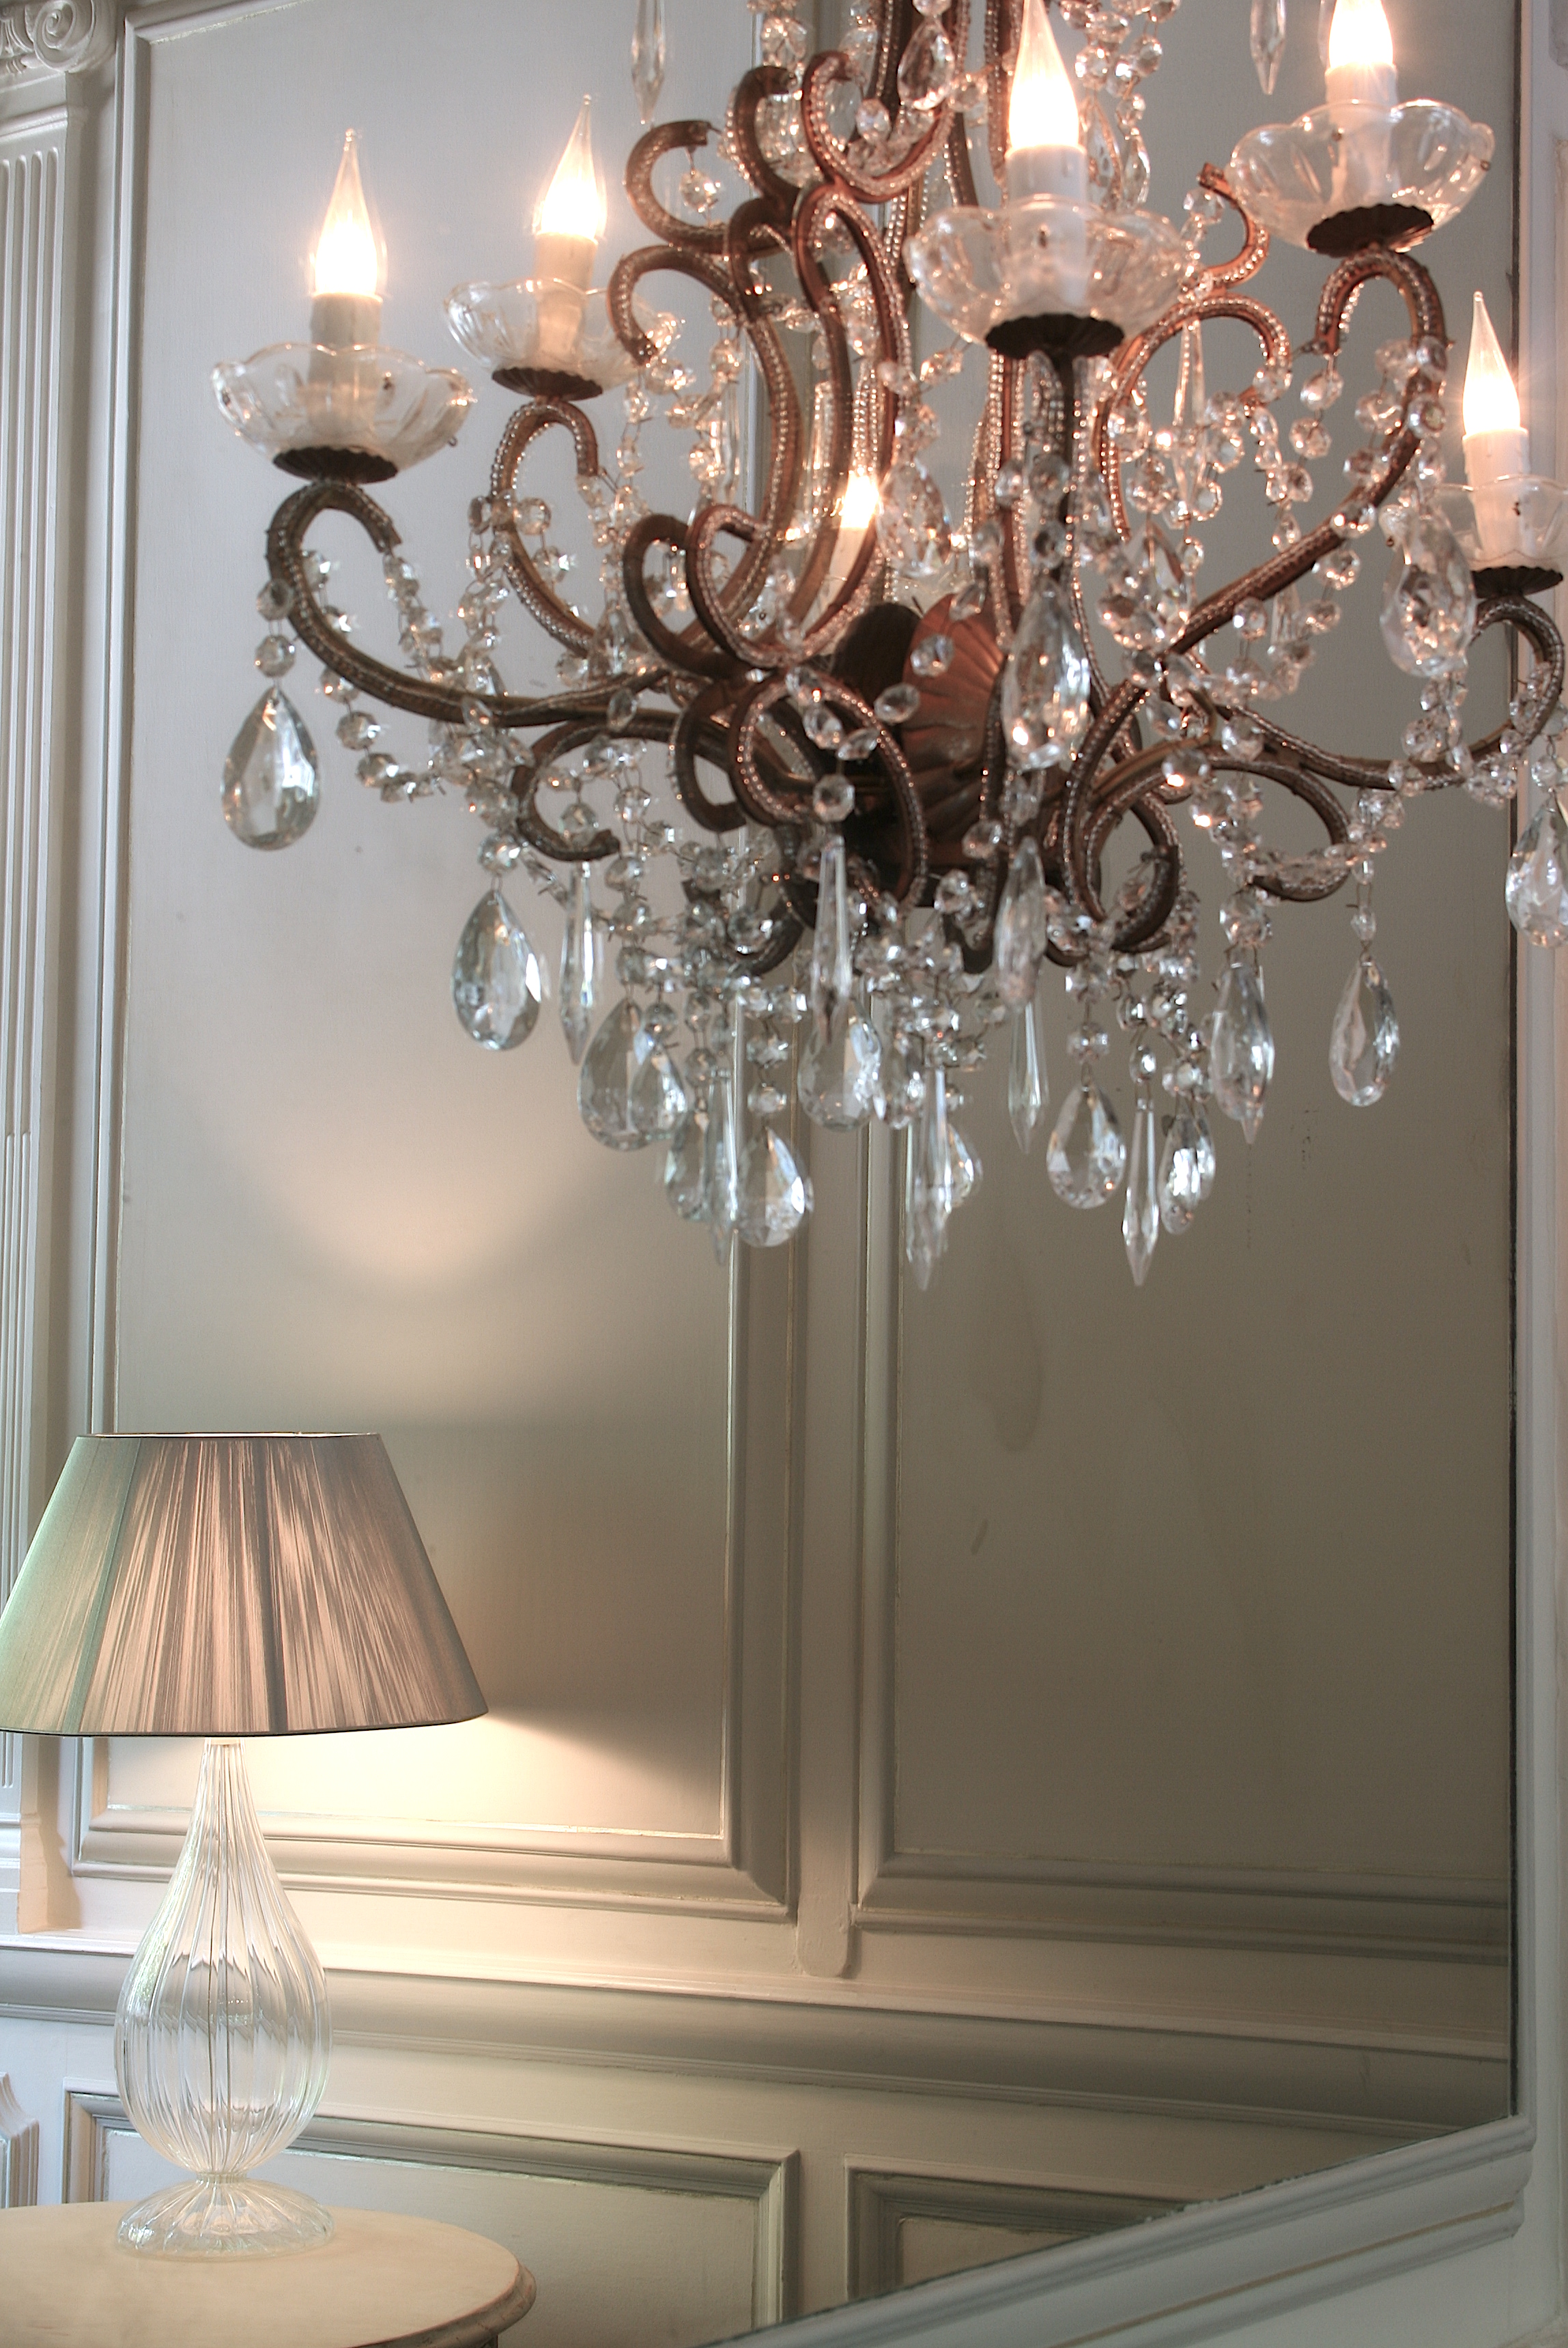 The existing panelling was painted in pale grey, finished with an antique wash, and edged in moon gold, to detail the shapes. Bespoke chandelier sconces were backed onto hand made antique mirror panels, facing the large sash windows